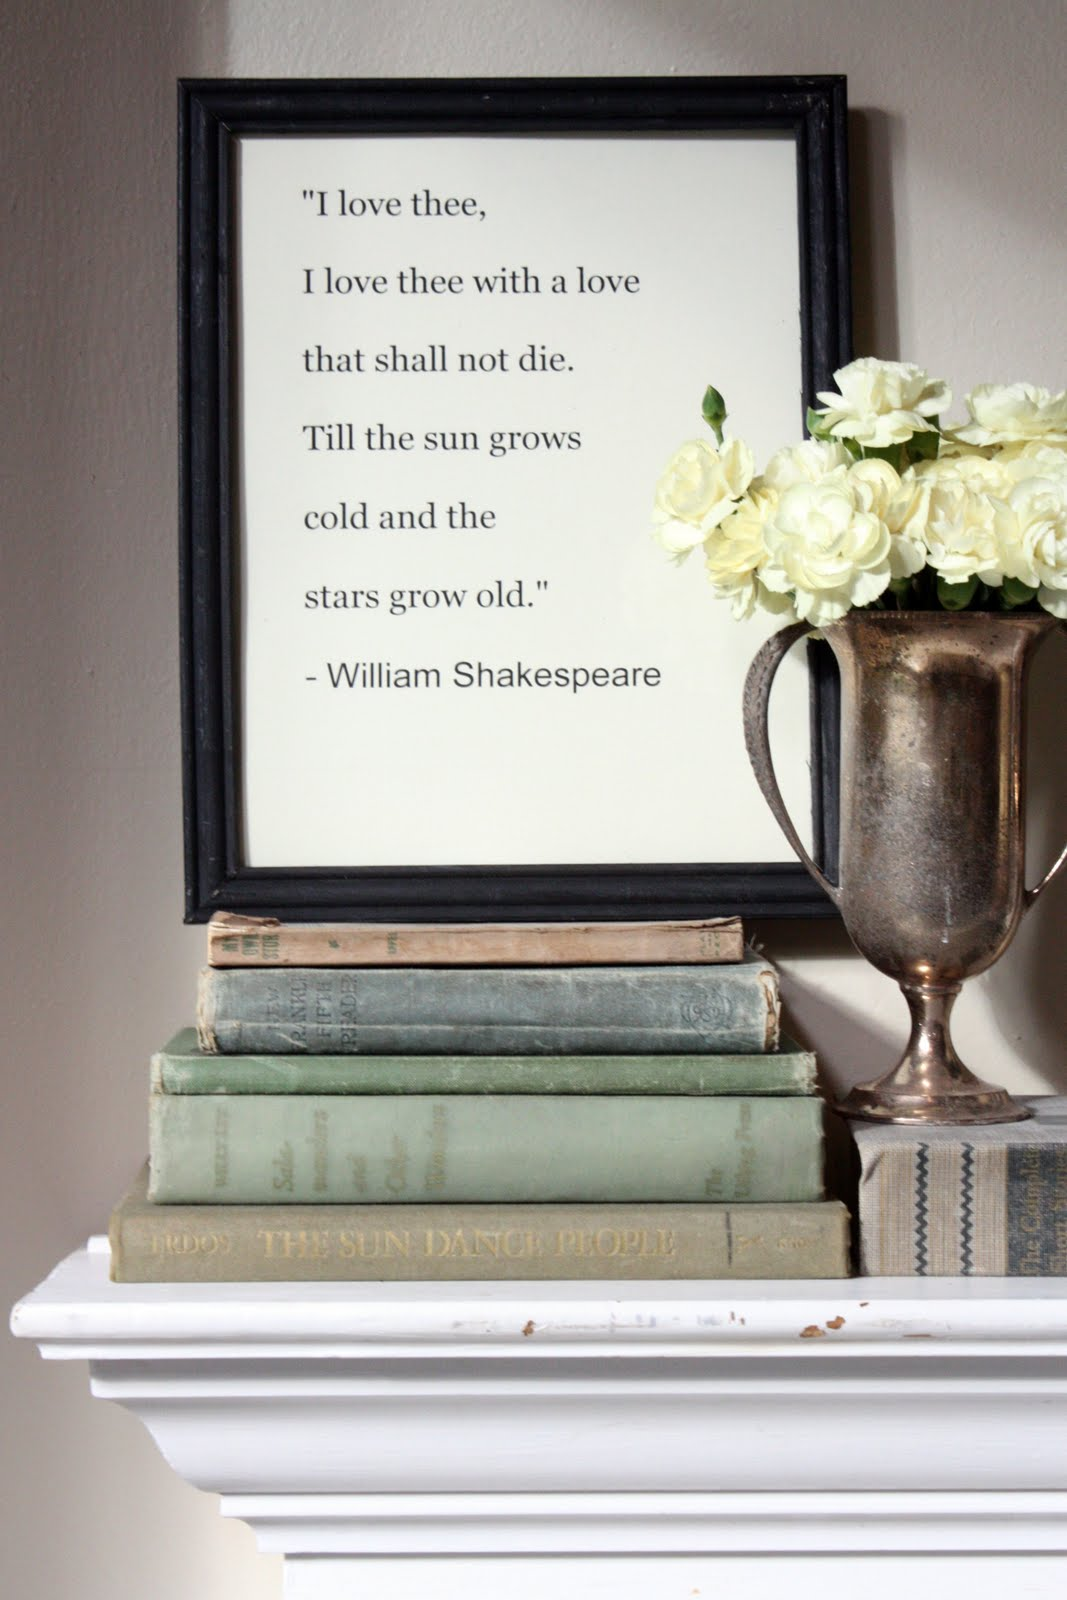 My Sweet Savannah Framed Quotes For Valentine S Day